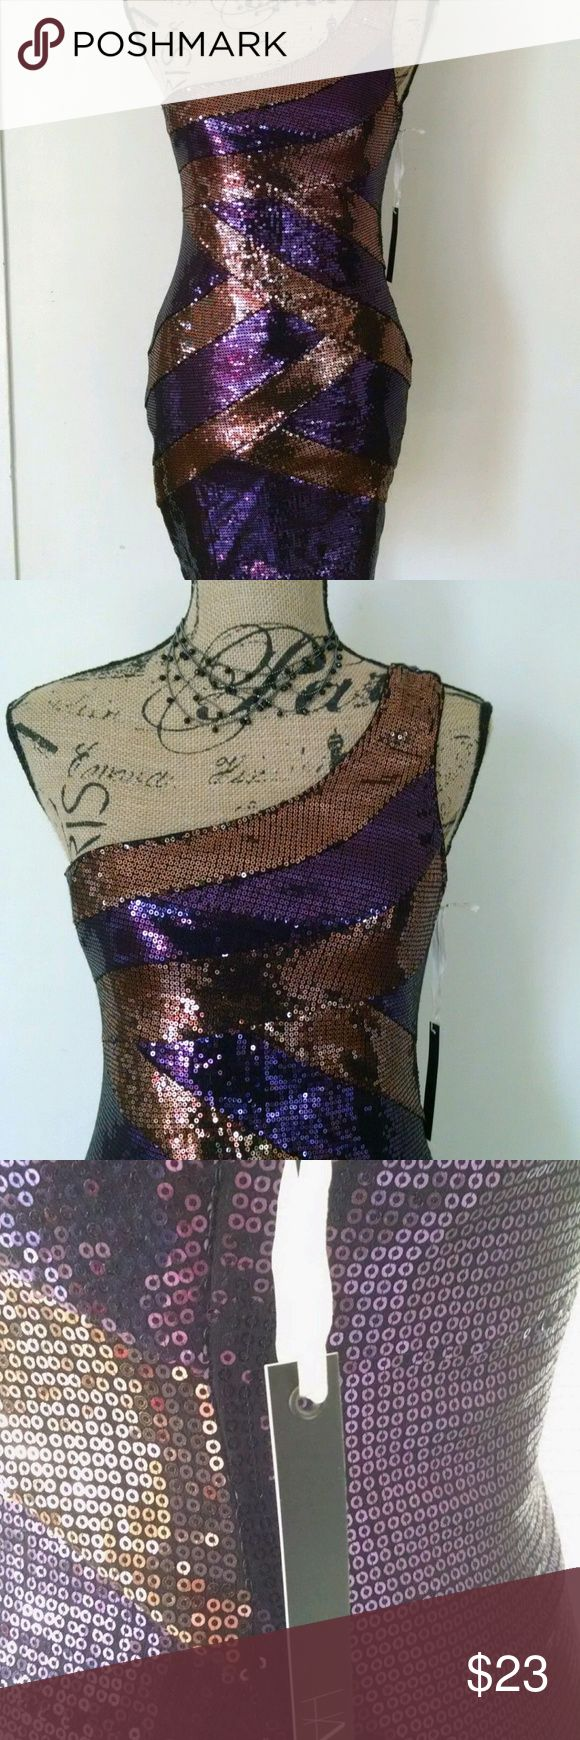 "New Sexy Sequins Tunic Dress Club Large Sexy Sequins Tunic Dress Club Vixen Vegas Prom Mini NWT Purple Bronze Sz Large  What a dress! Sequins highlight this dress throughout. It has one thick strap. It is new with tags. It is a size small with the following dimensions-Chest (armpit to armpit) 16"", Length 33"", Waist 13"", Hips 16"". Have Dresses Midi"